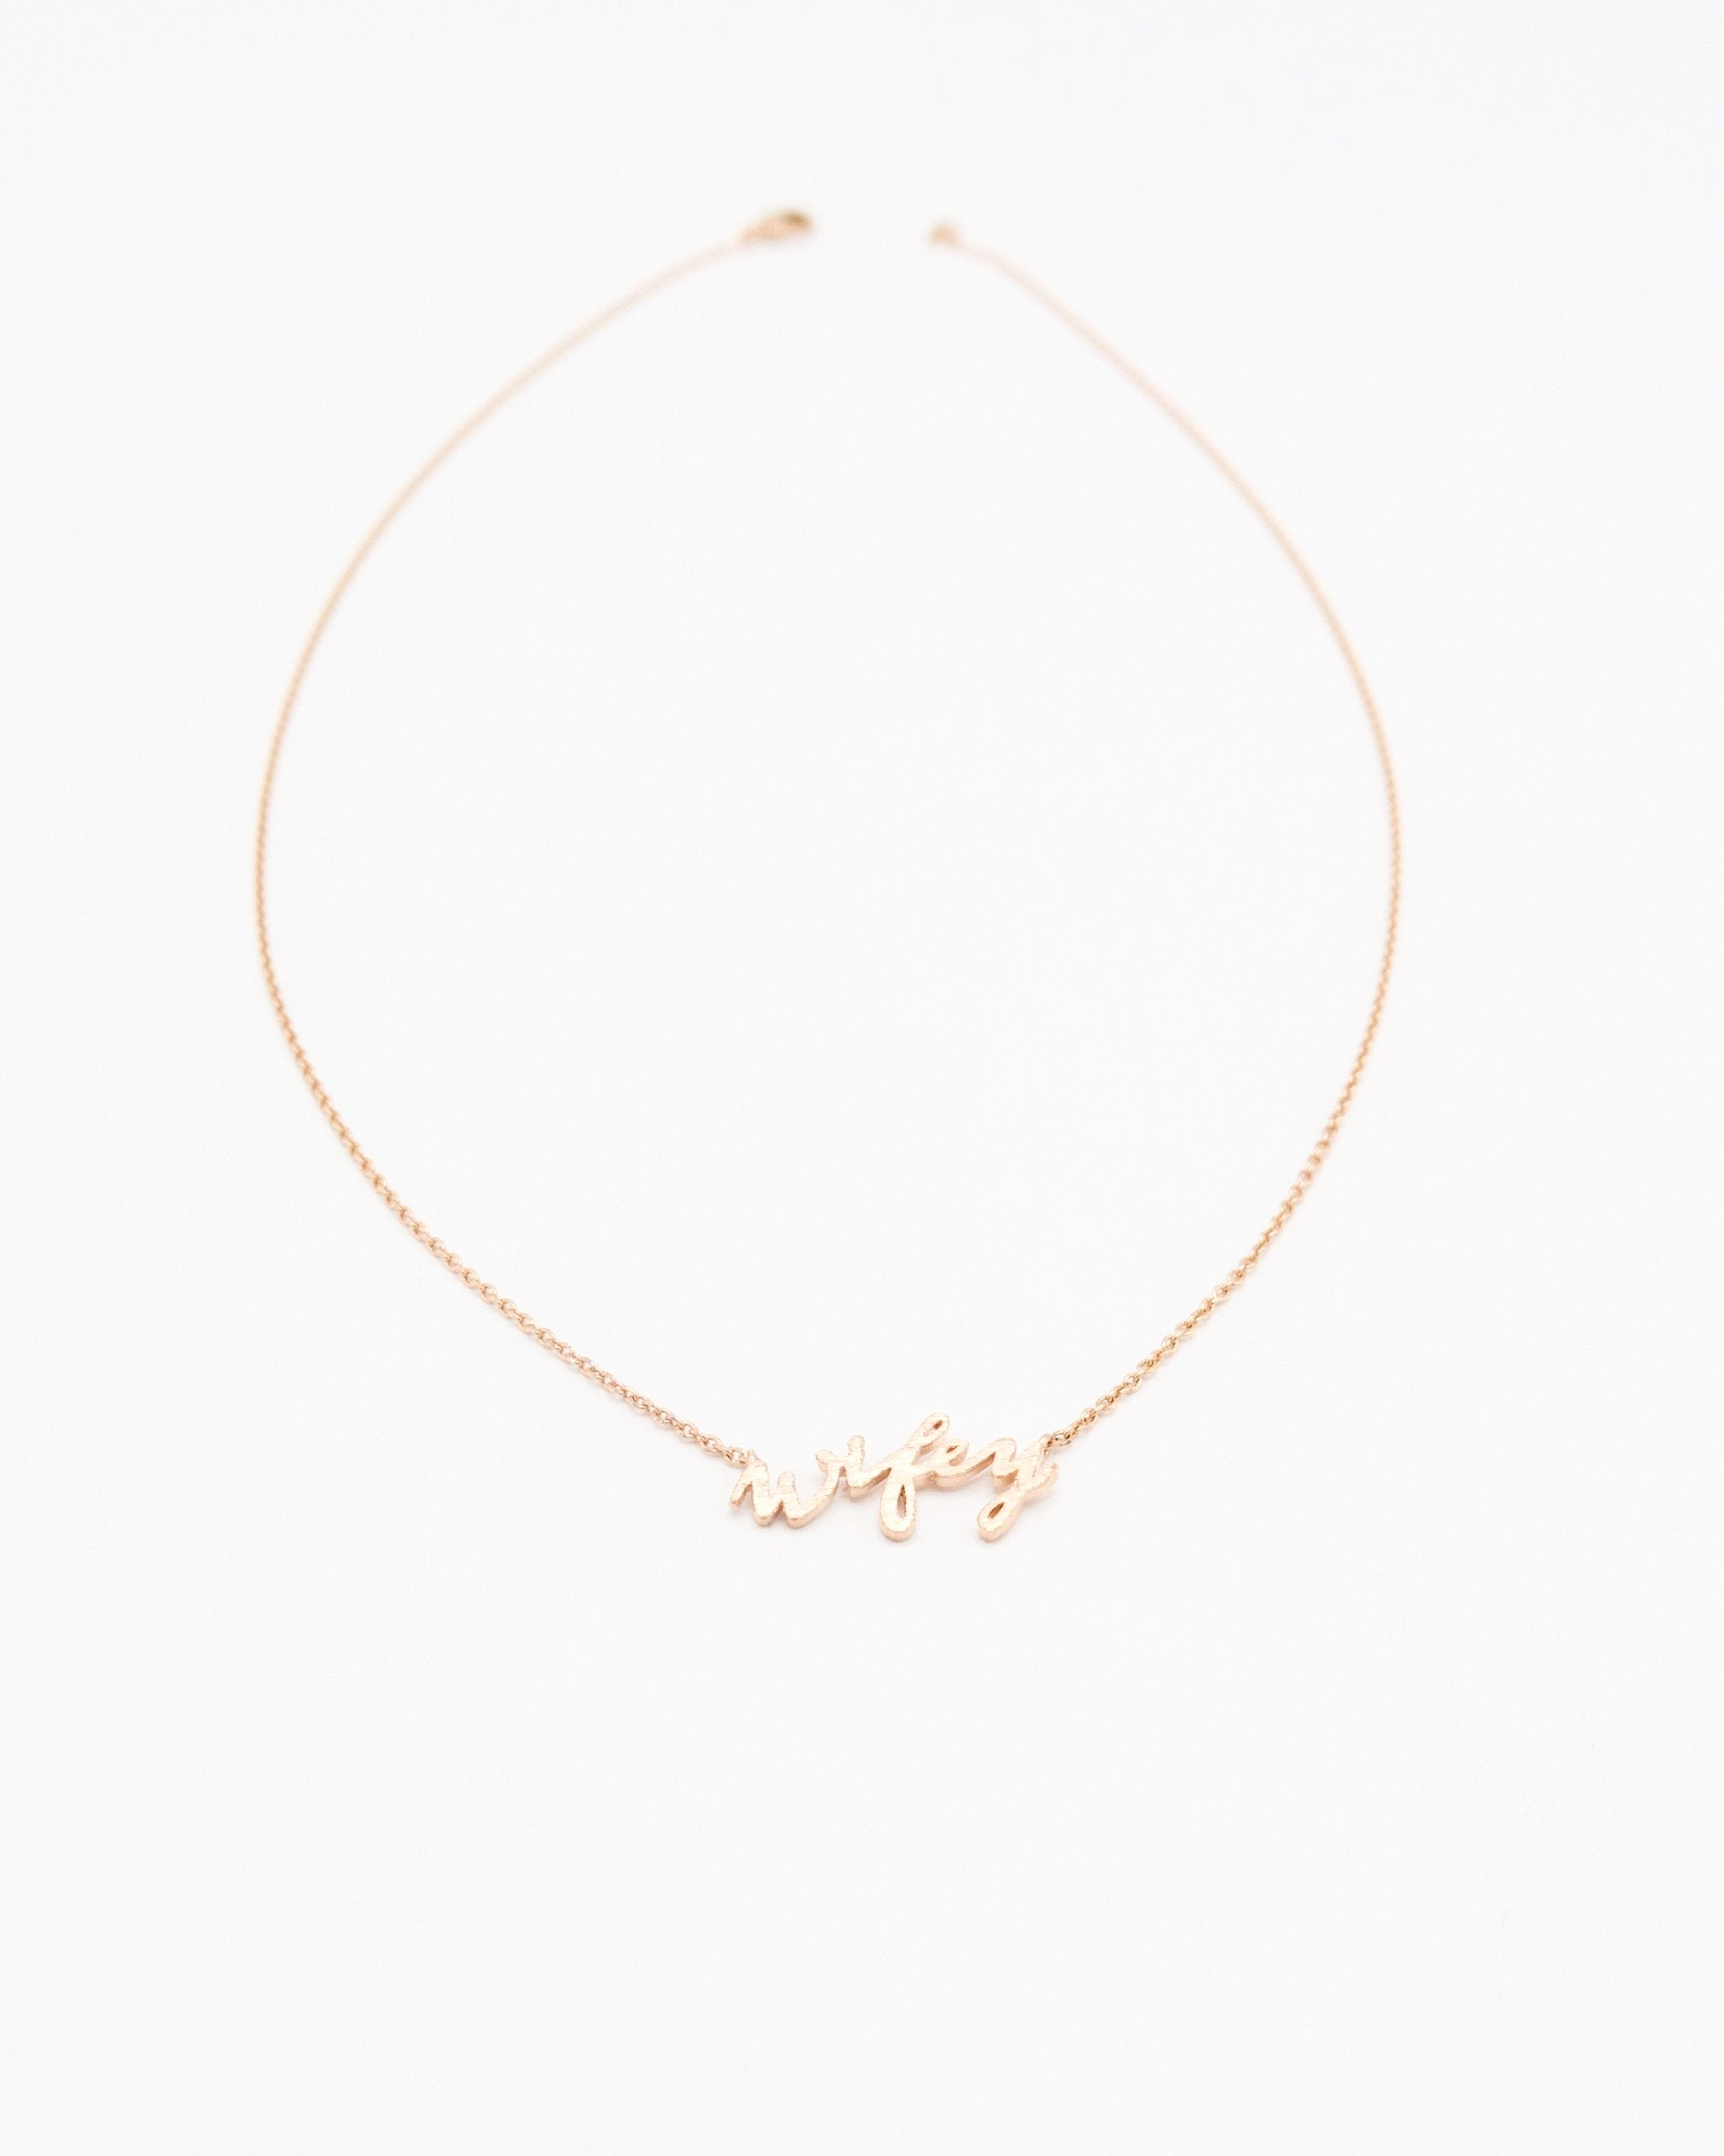 Wifey Word Necklace in rose gold